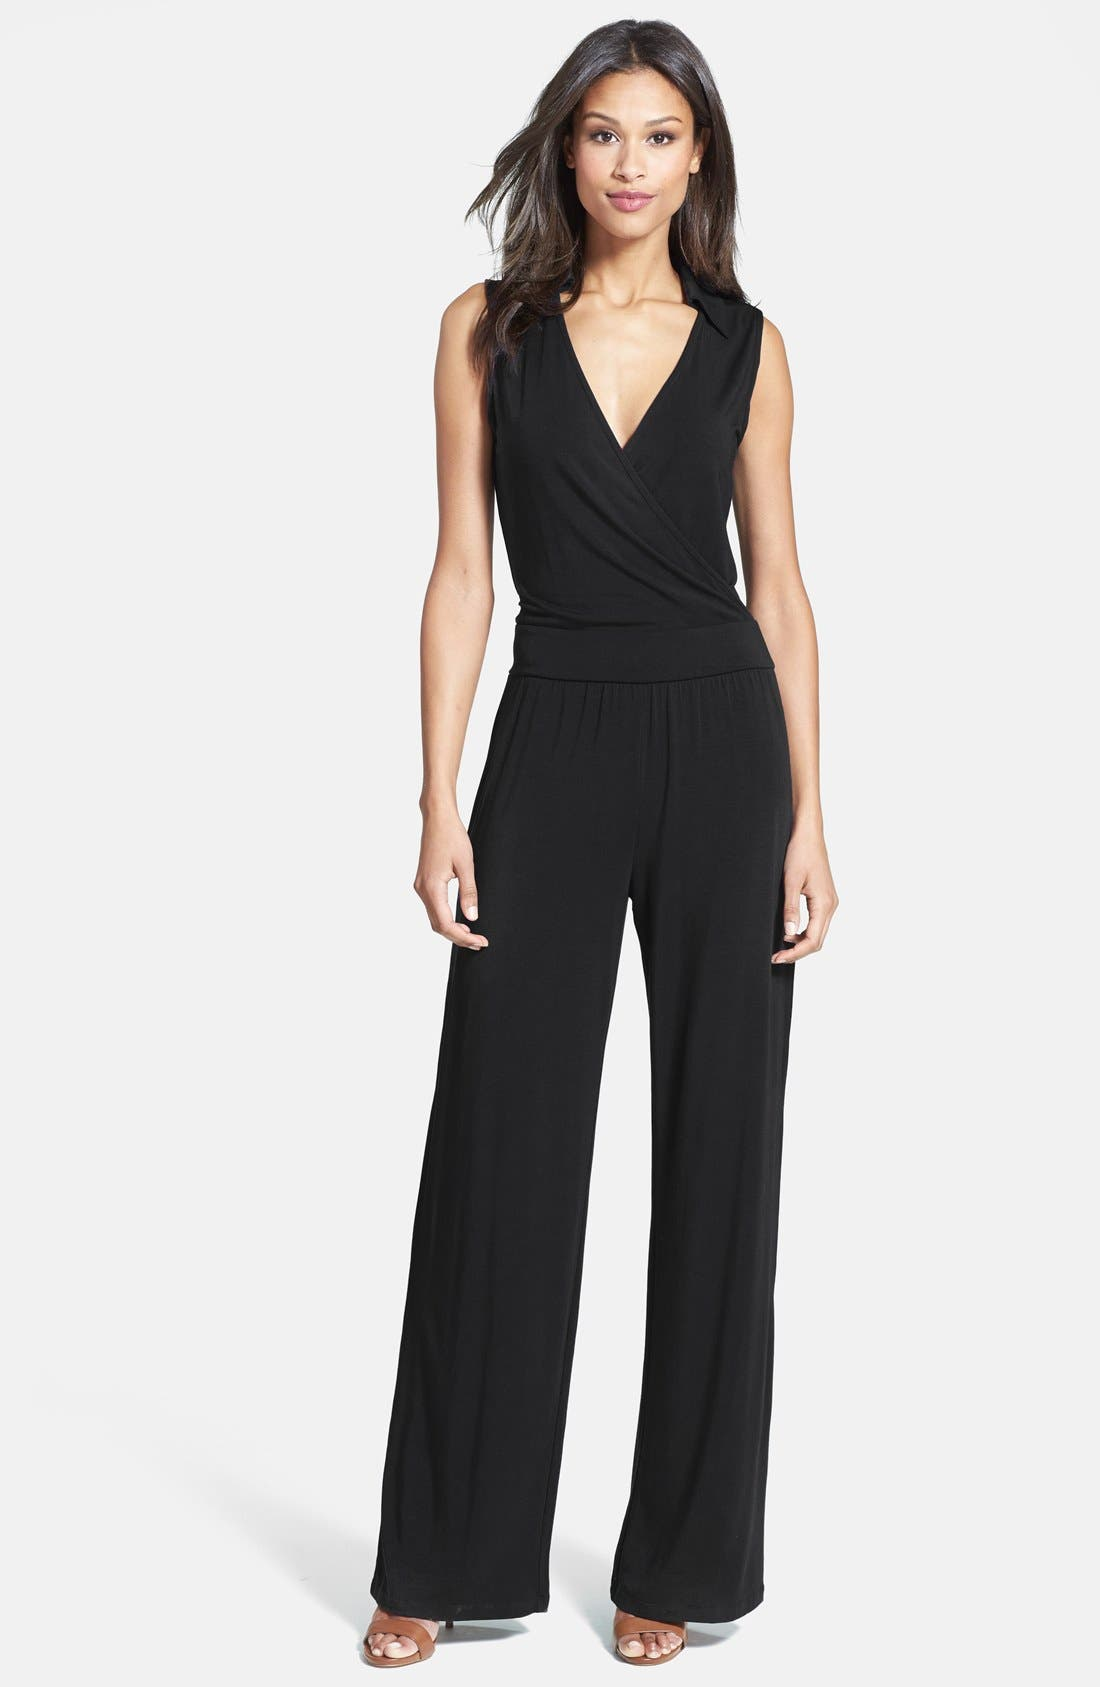 TART 'Kenna' V-Neck Stretch Jersey Jumpsuit, Main, color, 001